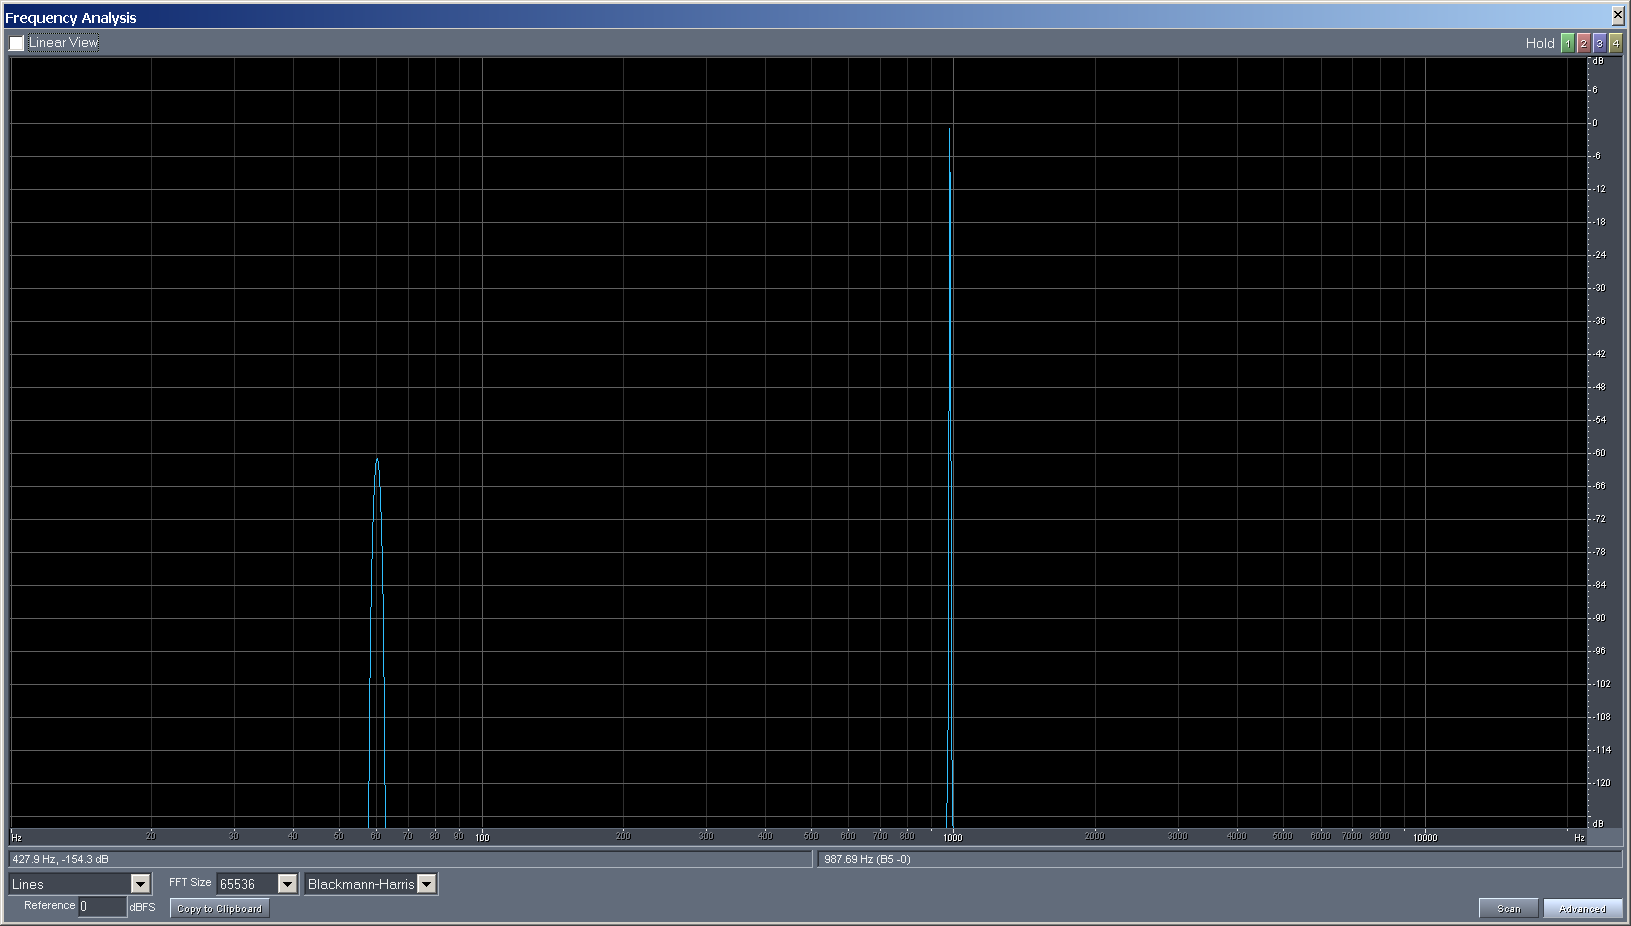 B5 with 0_1pct 60 Hz THD+N FFT.png